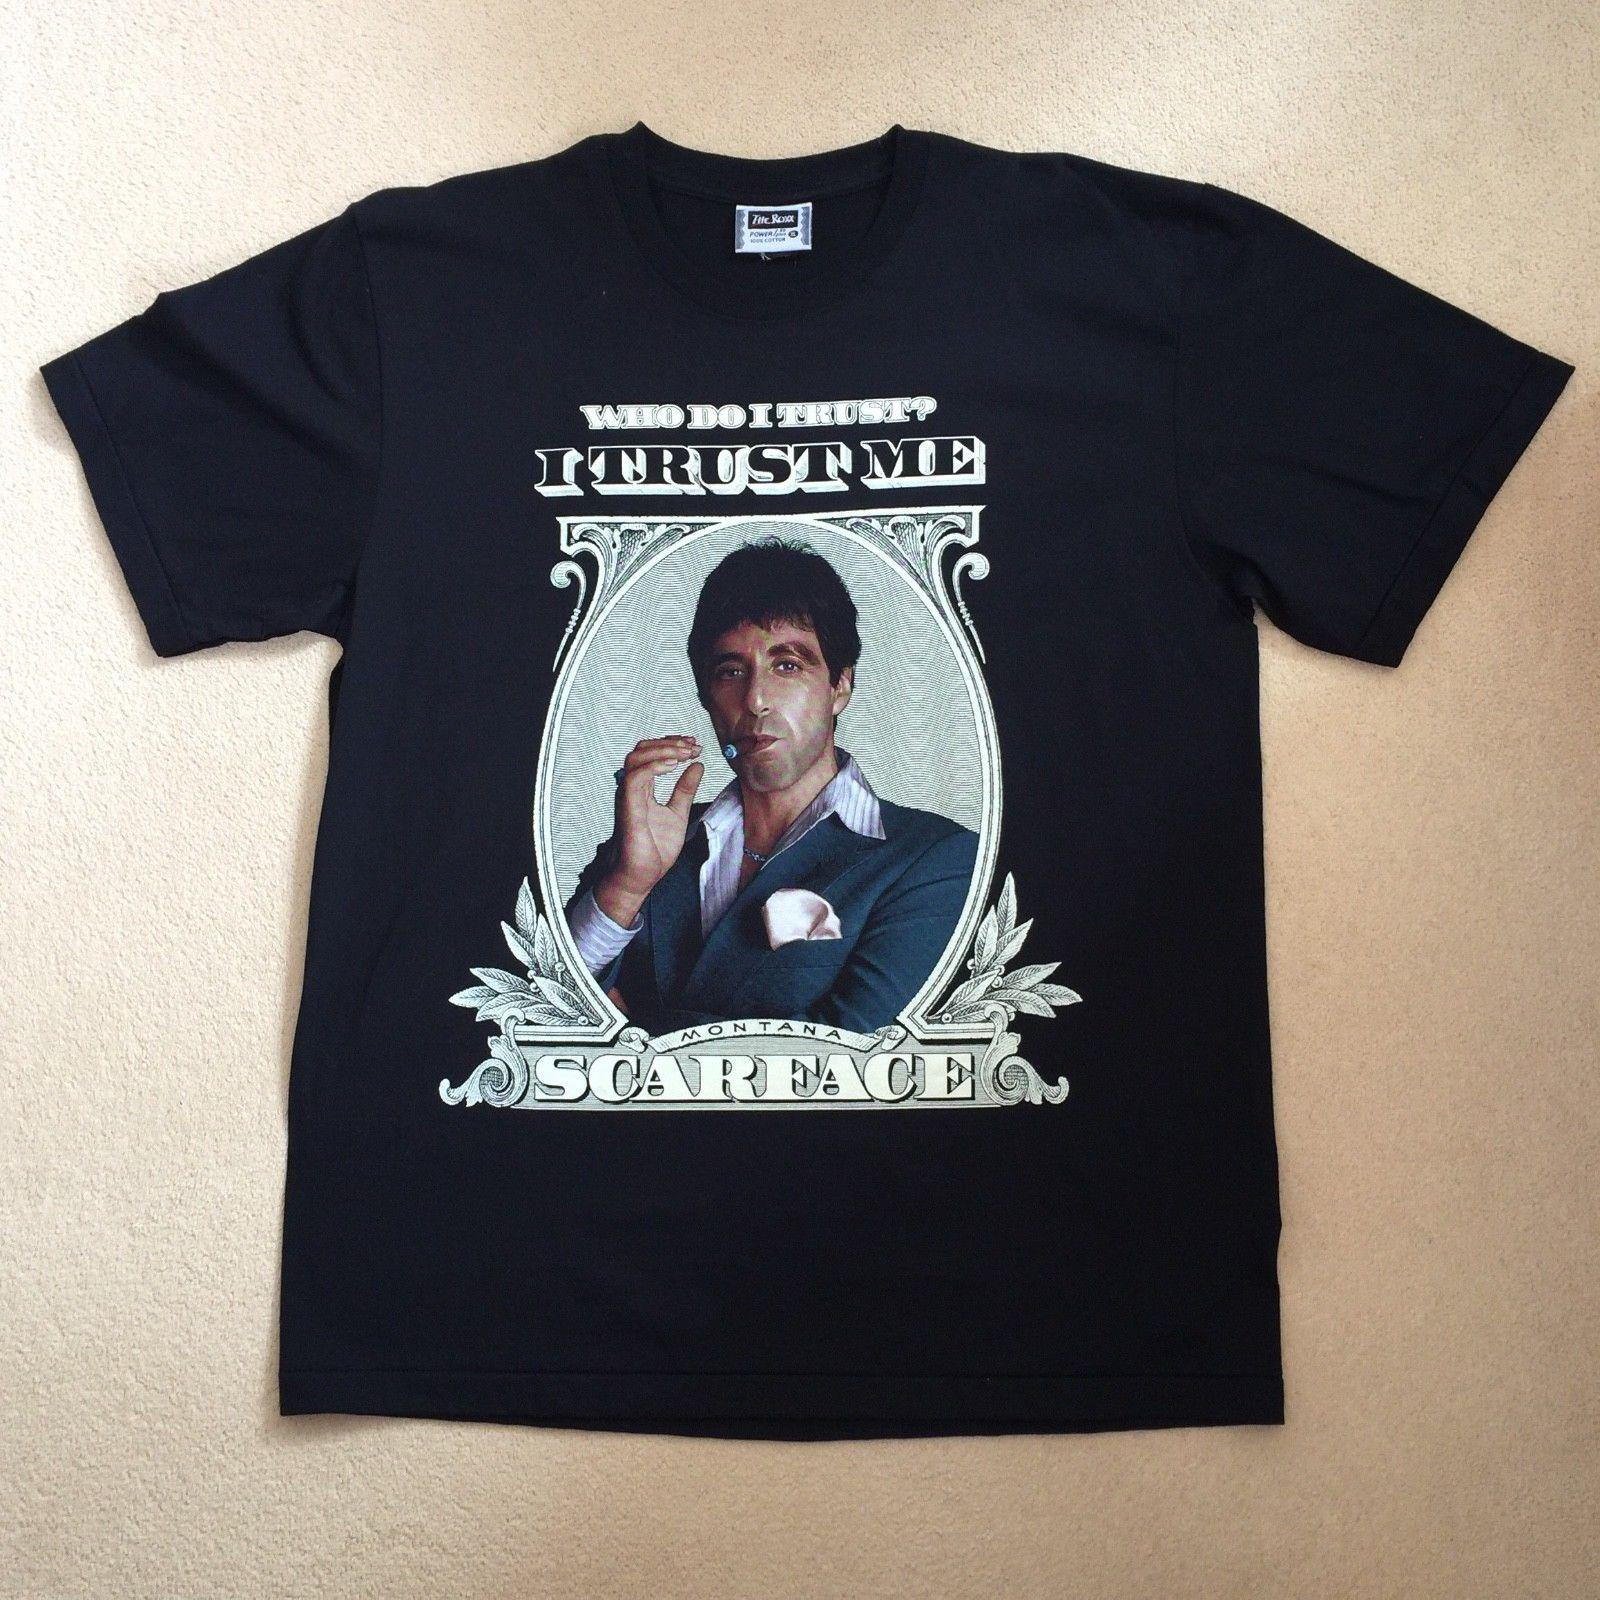 RARE Vintage Retro Scarface Tony Montana Al Pacino T Shirt Cult Mafia Mob  TeeMen Women Unisex Fashion Tshirt The Who T Shirt T Shirts Designs From ... 21ccba978c